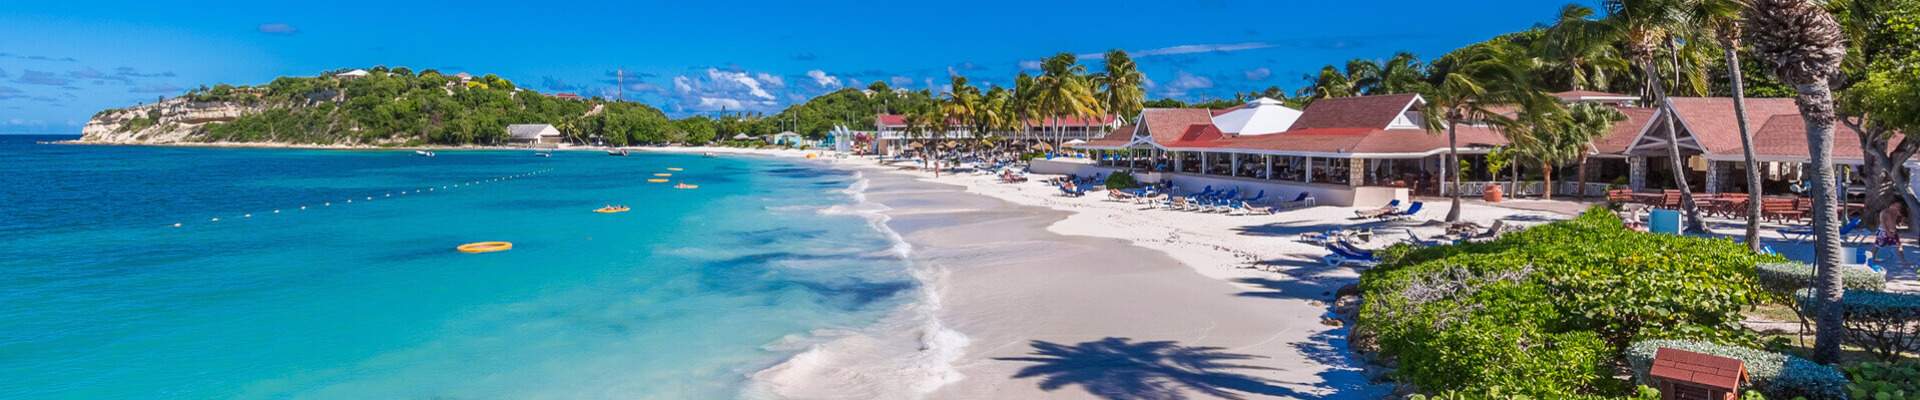 PINEAPPLE BEACH CLUB – ALL INCLUSIVE ANTIGUA